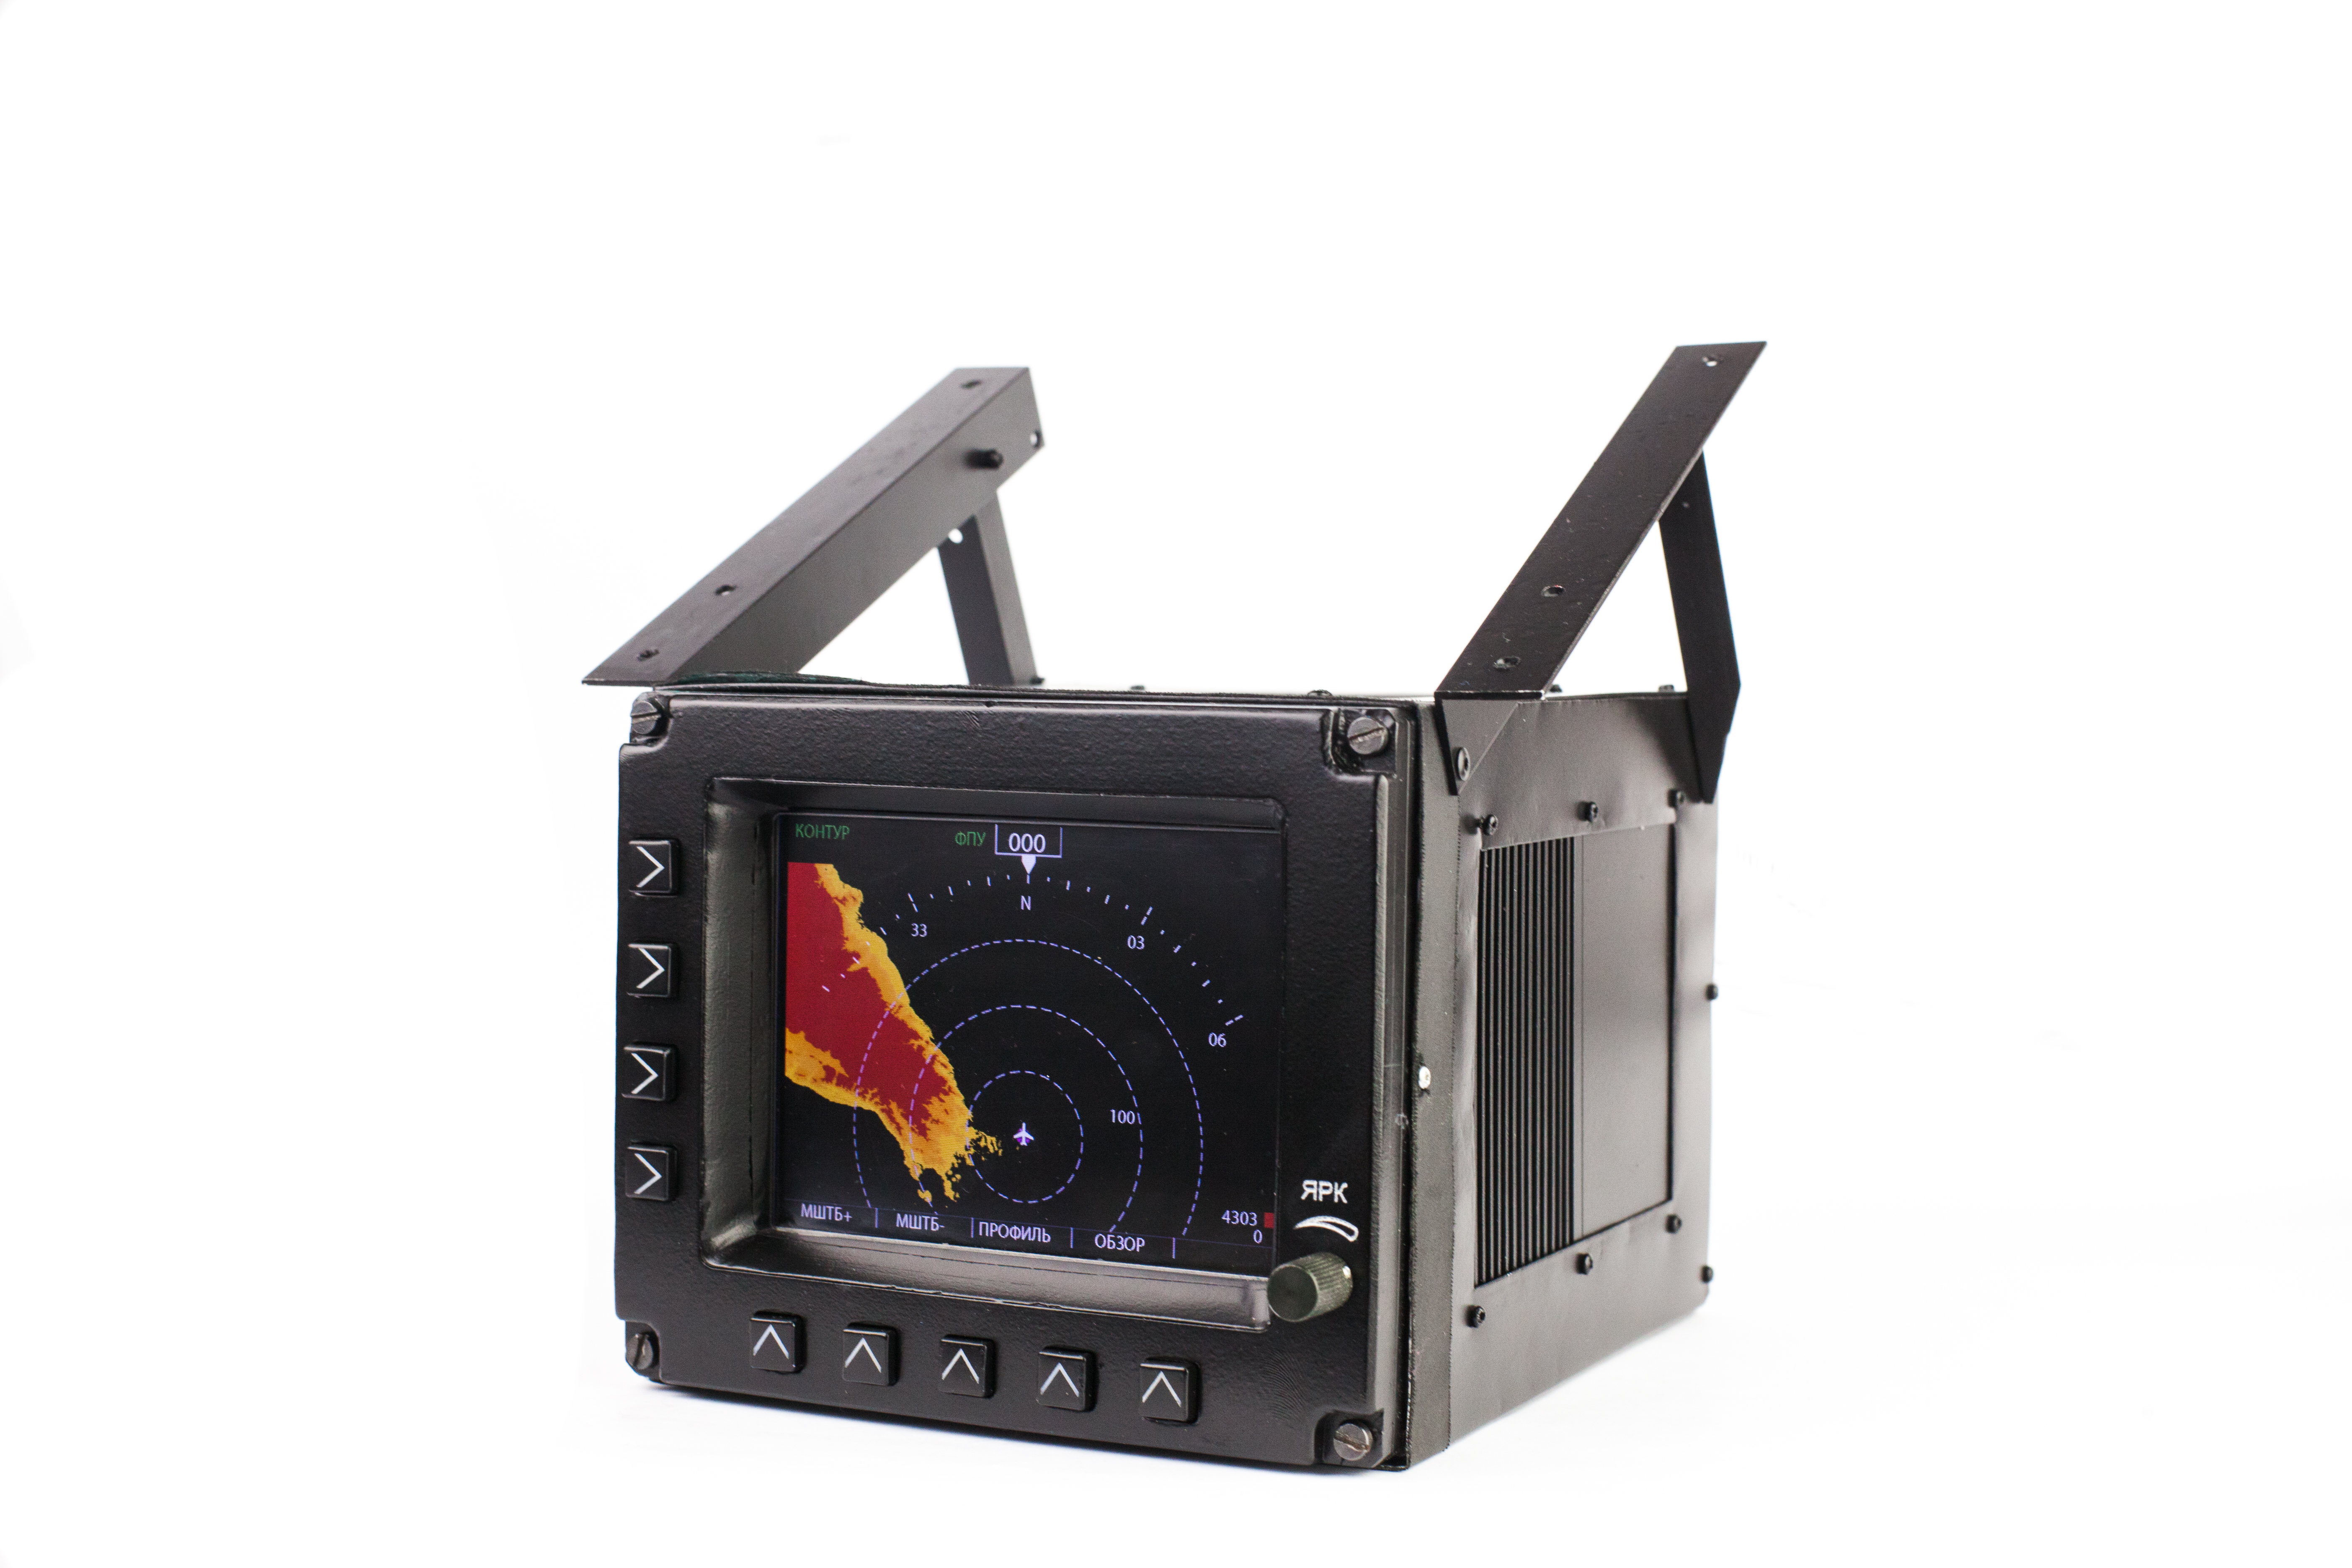 Multi-functional display TDS-56d imitator